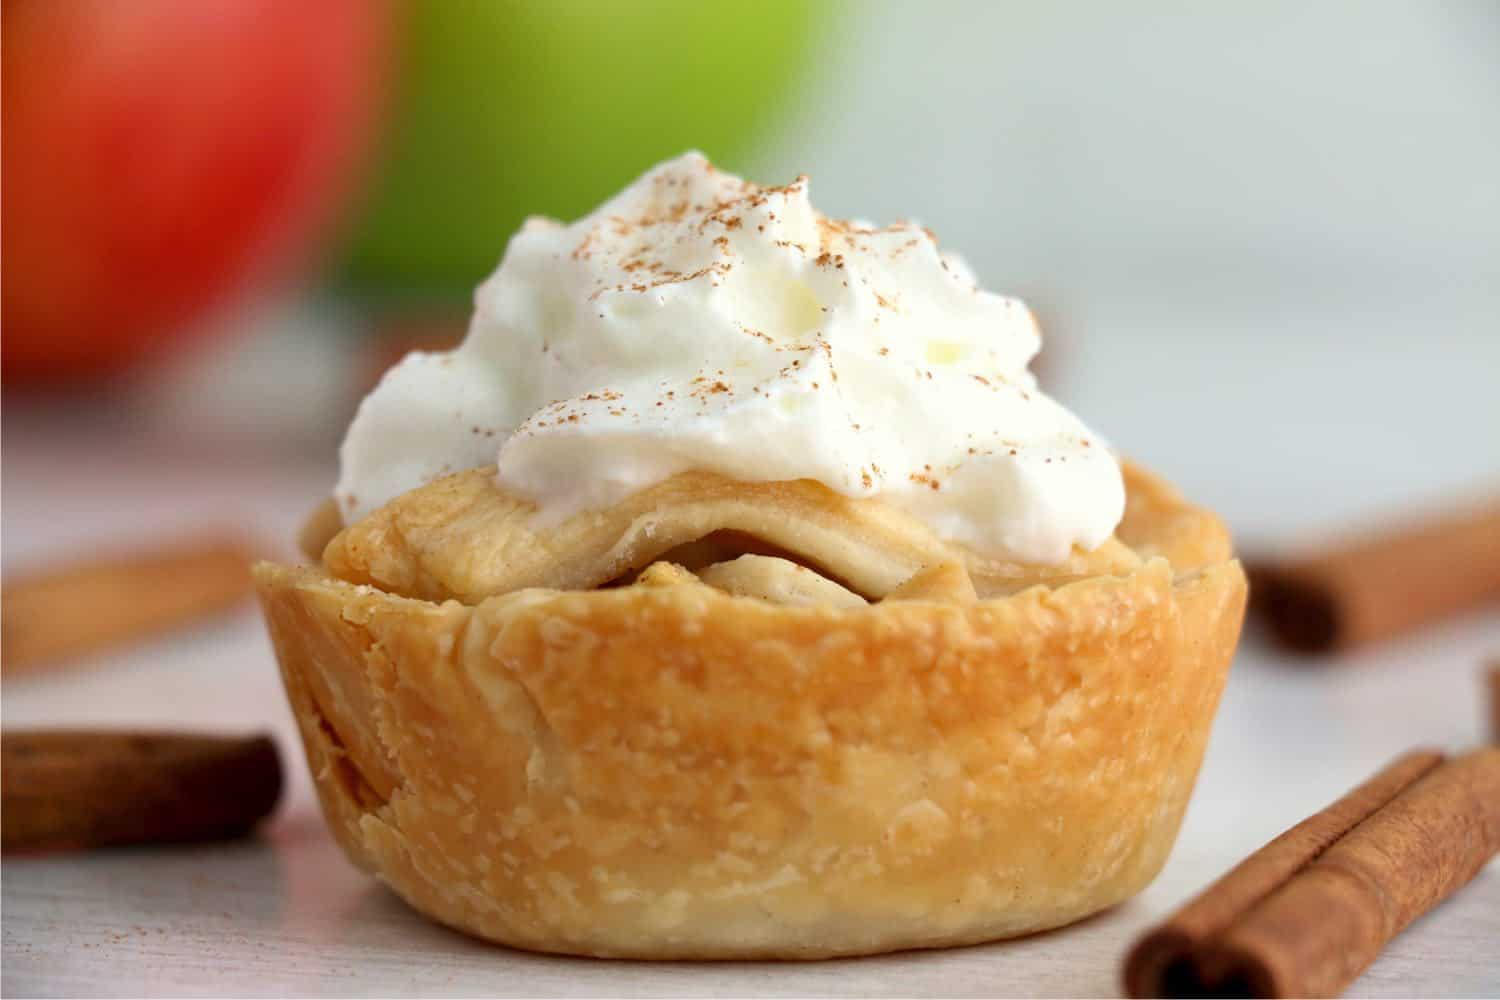 Muffin Tin Apple Pies are sweet, individual desserts that are simple to make. The flavors are amazing. Perfect for holidays and parties! #inspirationalmomma #muffintinapplepies #miniapplepies #applepie #miniatureapplepies #desserts #recipes #dessertrecipes